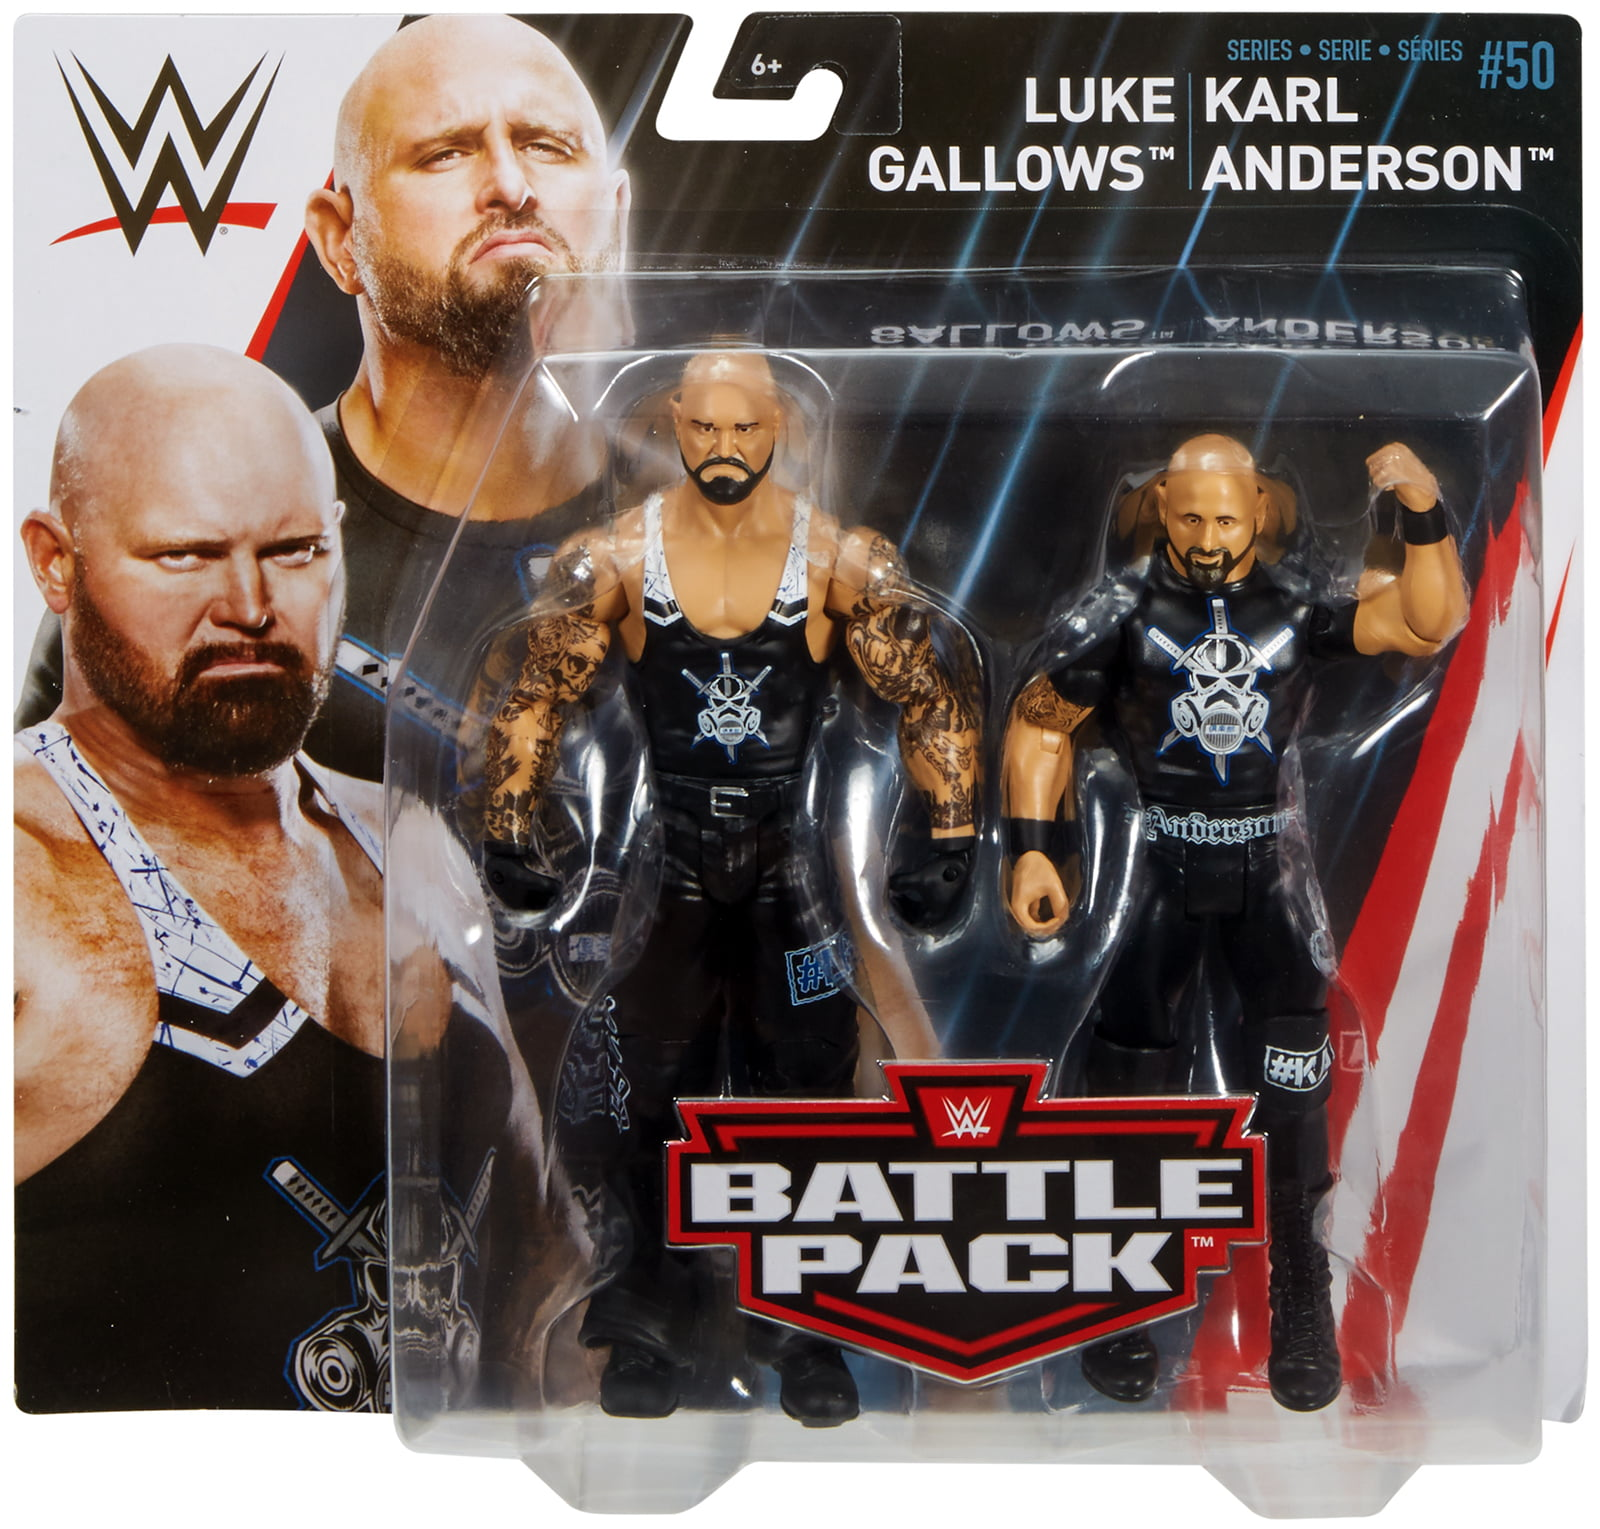 Karl Anderson & Luke Gallows WWE Battle Packs 50 Toy Wrestling Action Figures by Mattel